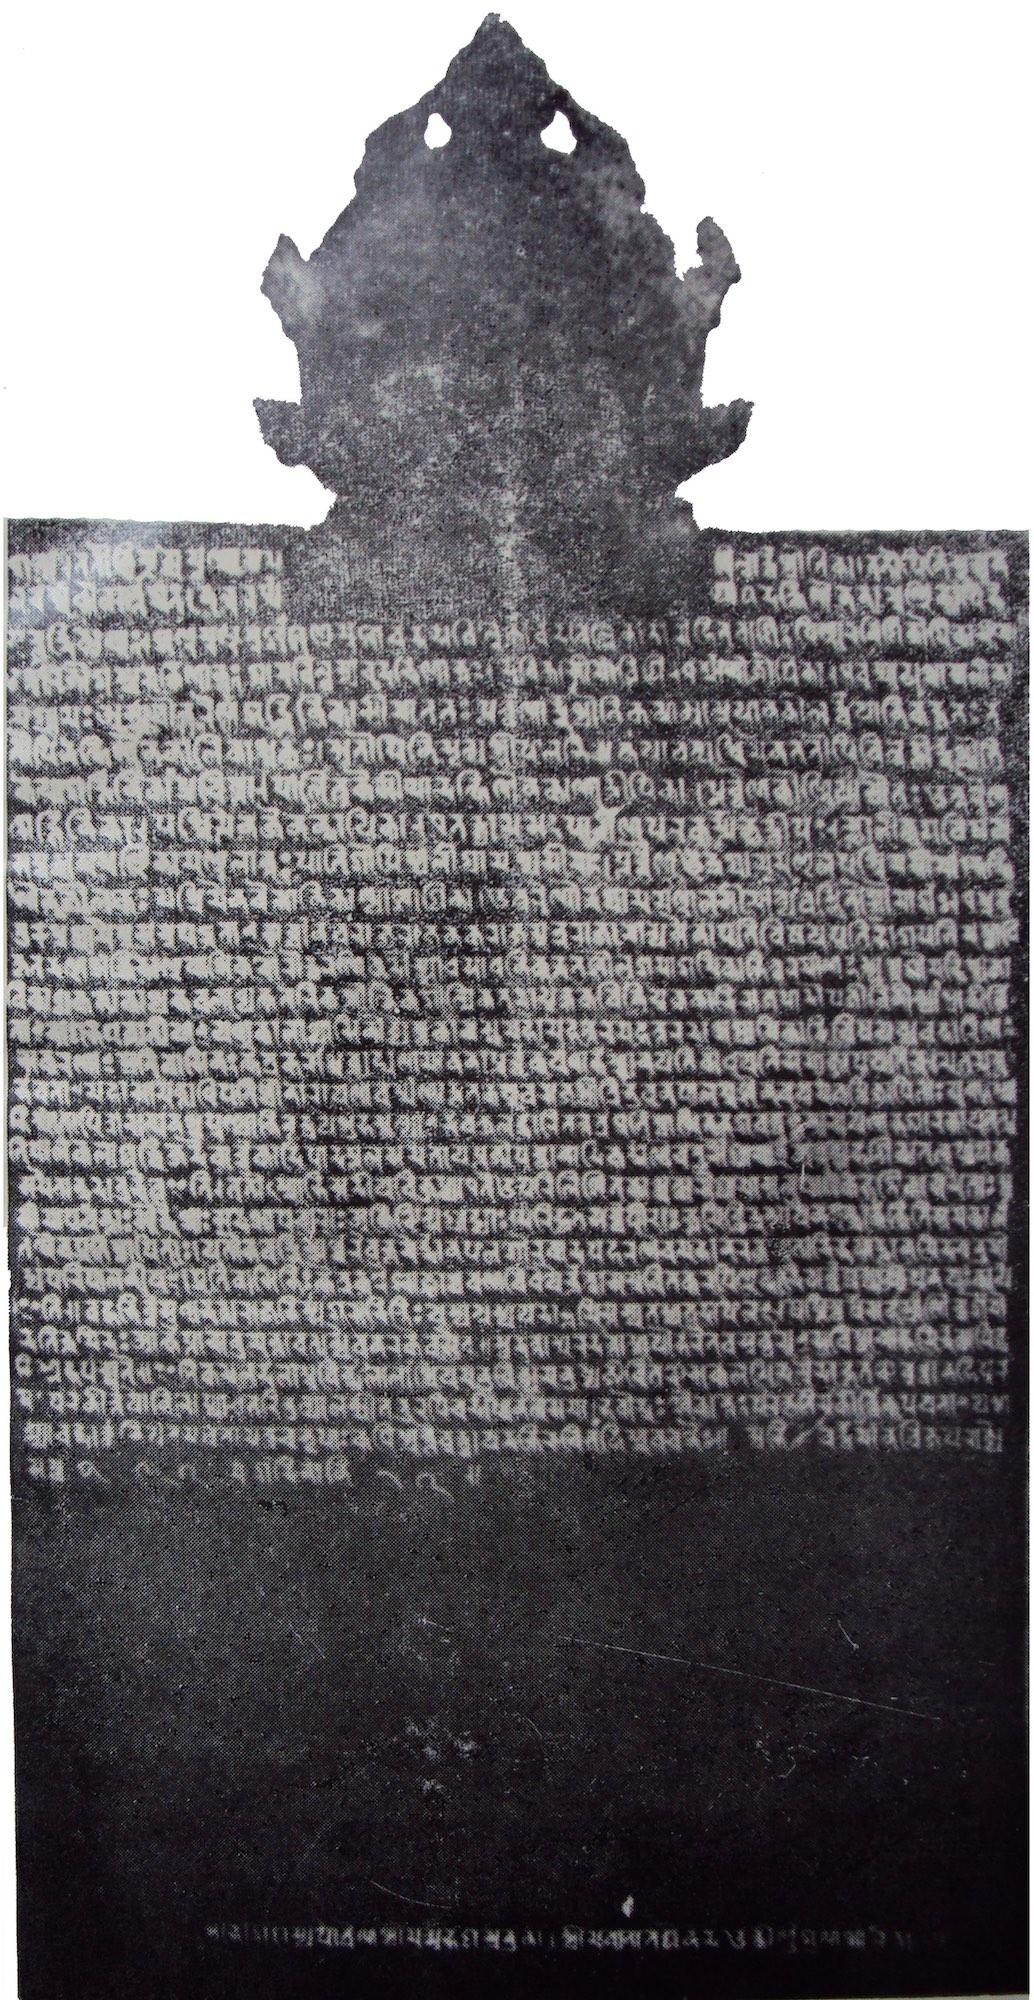 The copper plate of Dharmapala found in Khalimpur village of West Bengal gives an account of Dharmapalas great power and influence: 'His court was attended by the rulers of Bhoja (possibly Vidarbha), Matsya (Jaipur region), Madra (East Punjab), Kuru (Delhi region), Yadu (possibly Mathura, Dwarka or Simhapura in the Punjab), Yavana (Greeks), Avanti, Gandhara and Kira (Kangra Valley). These kings accepted the installation of Chakrayudha on the Kannauj throne, while 'bowing down respectfully with their diadems trembling.' – © UNESCO